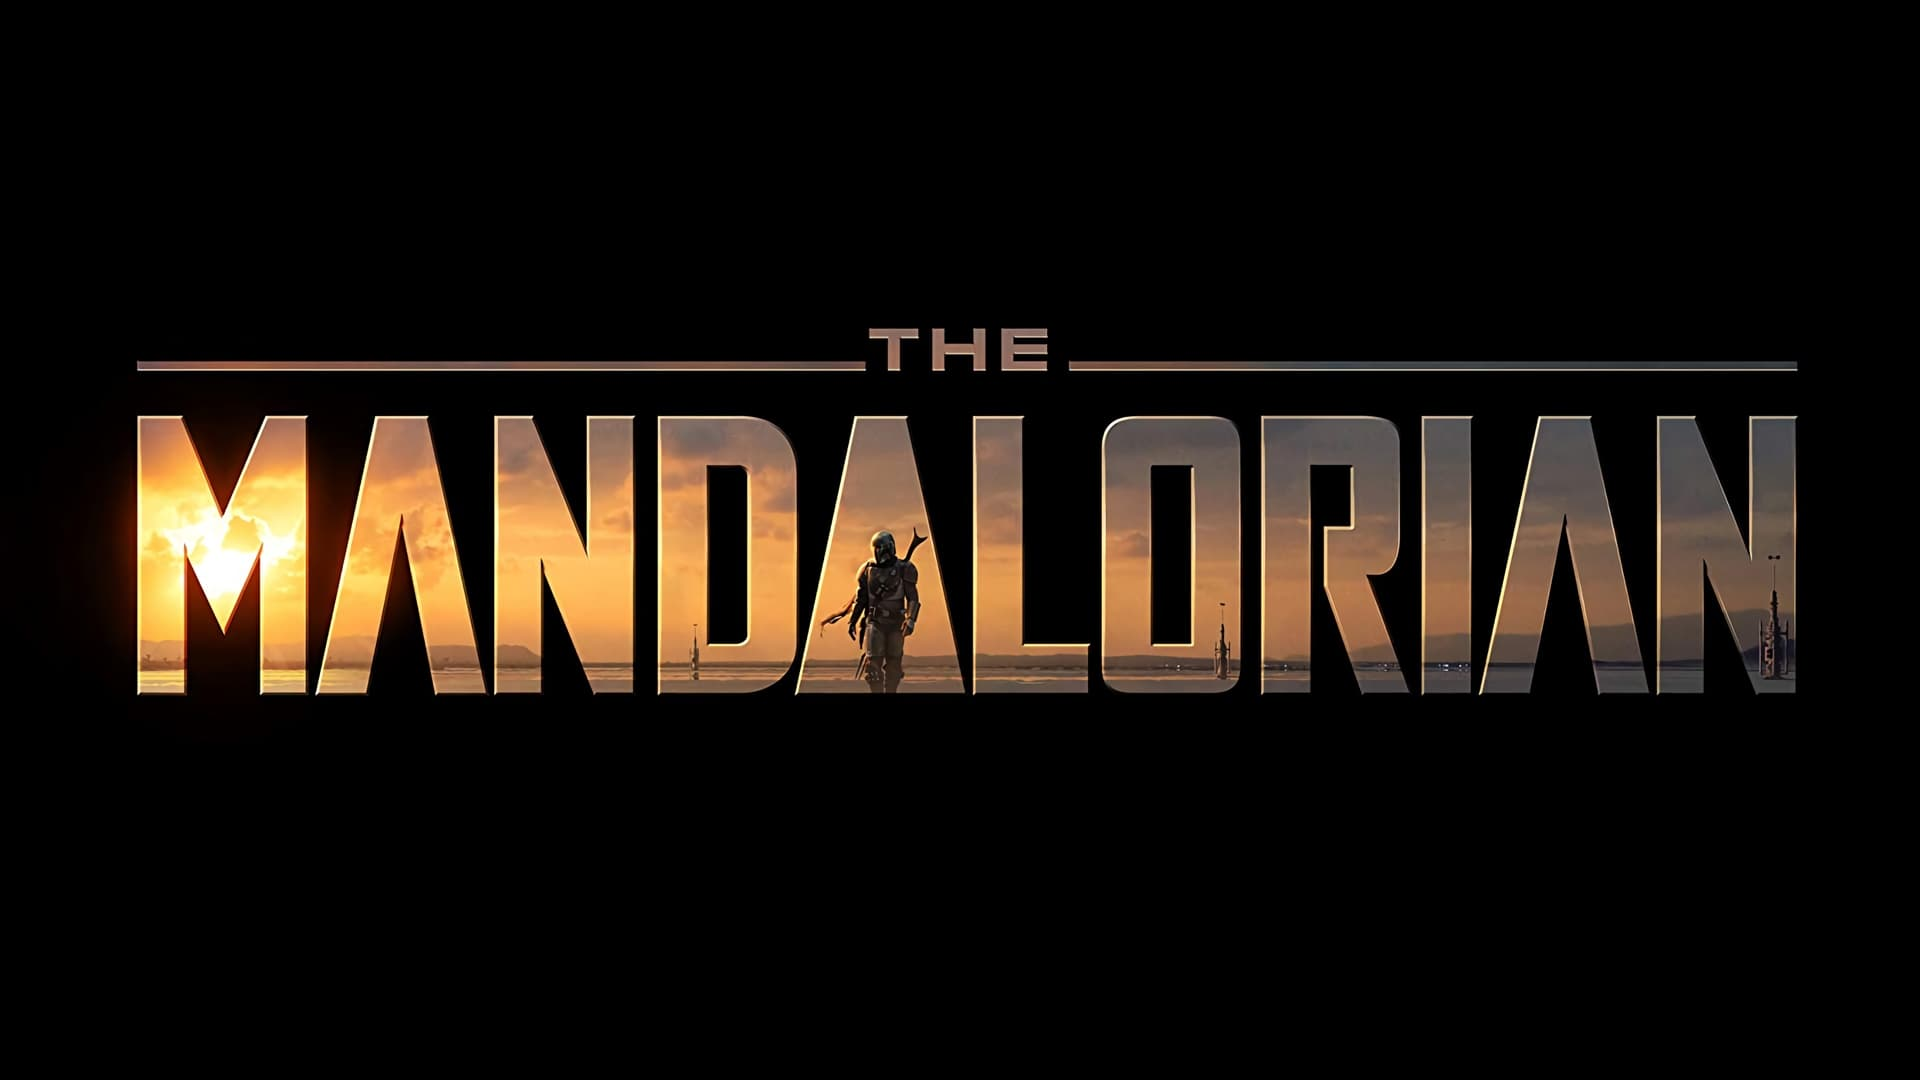 The Mandalorian - Season the Episode mandalorian